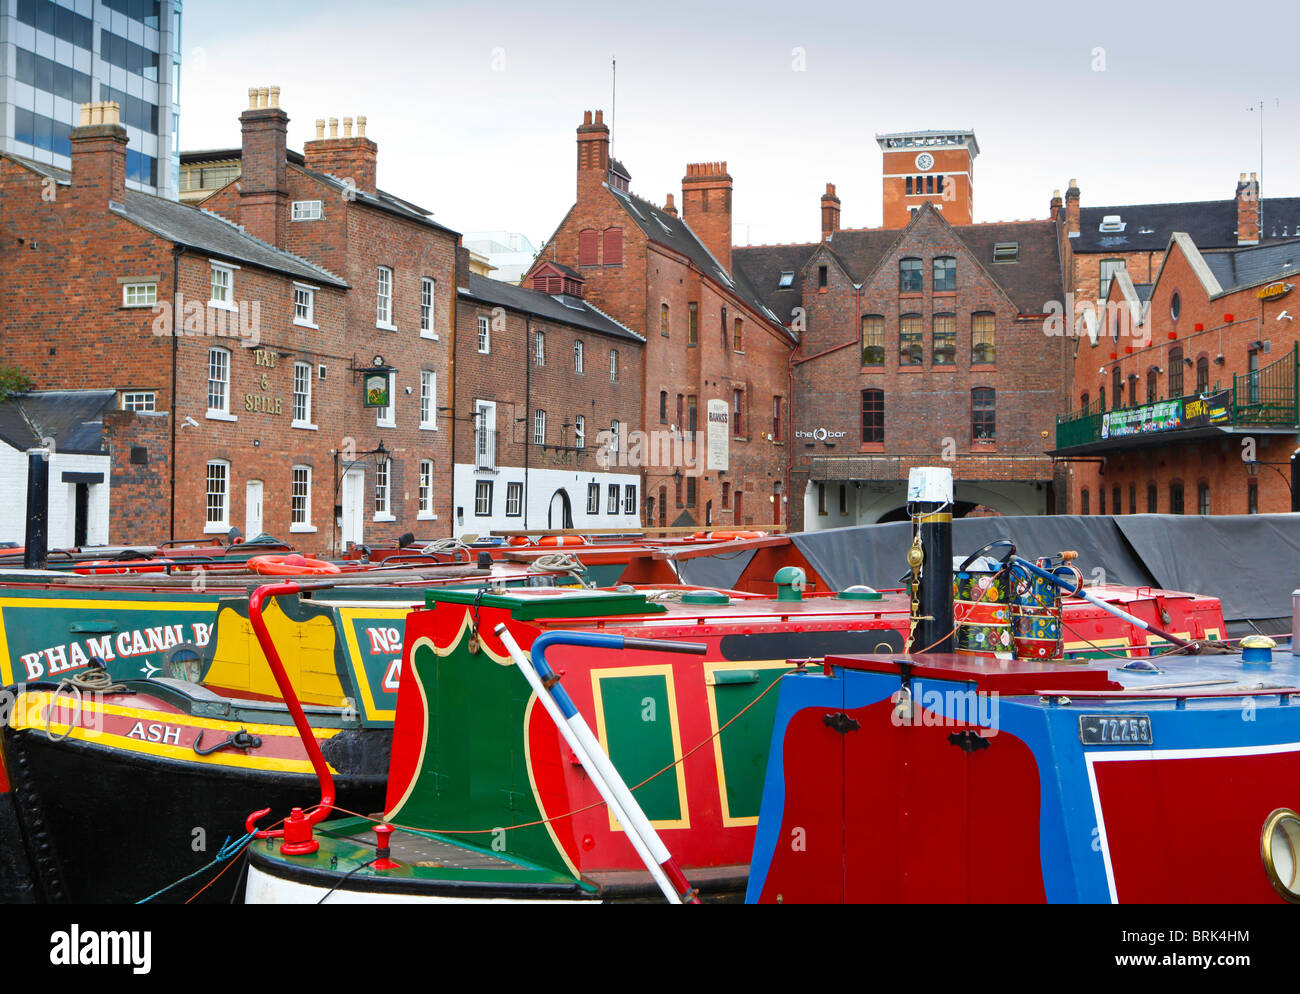 Gas Street Basin canal network in Birmingham, West Midlands, England, UK Stock Photo